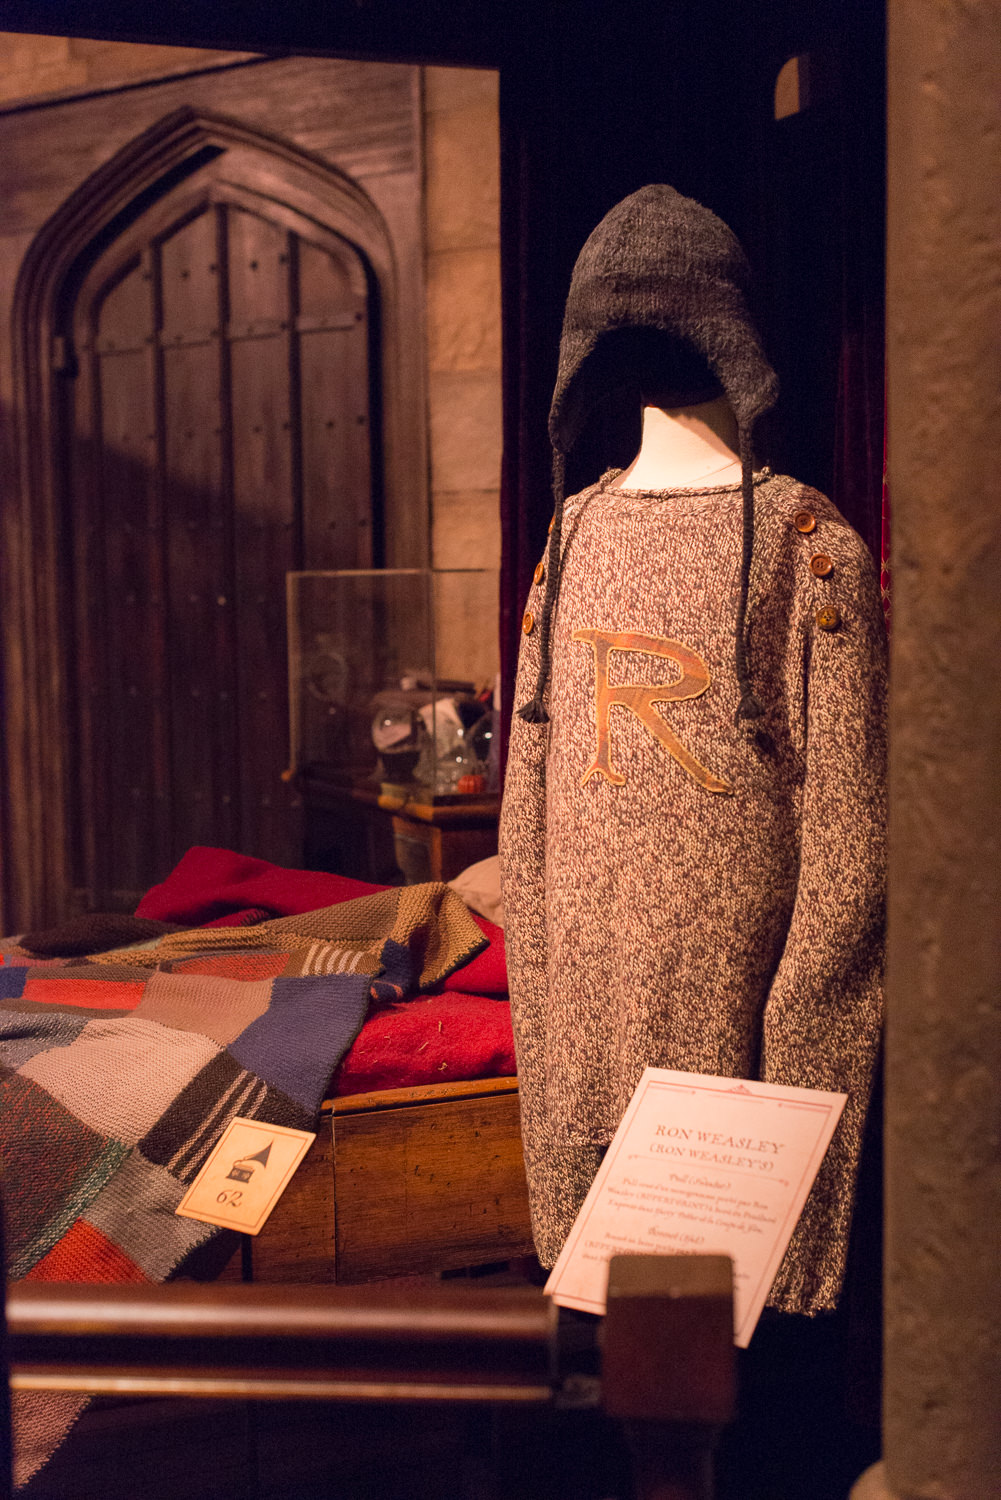 Blog Mode And The City - Exposition Harry Potter Paris - Ron